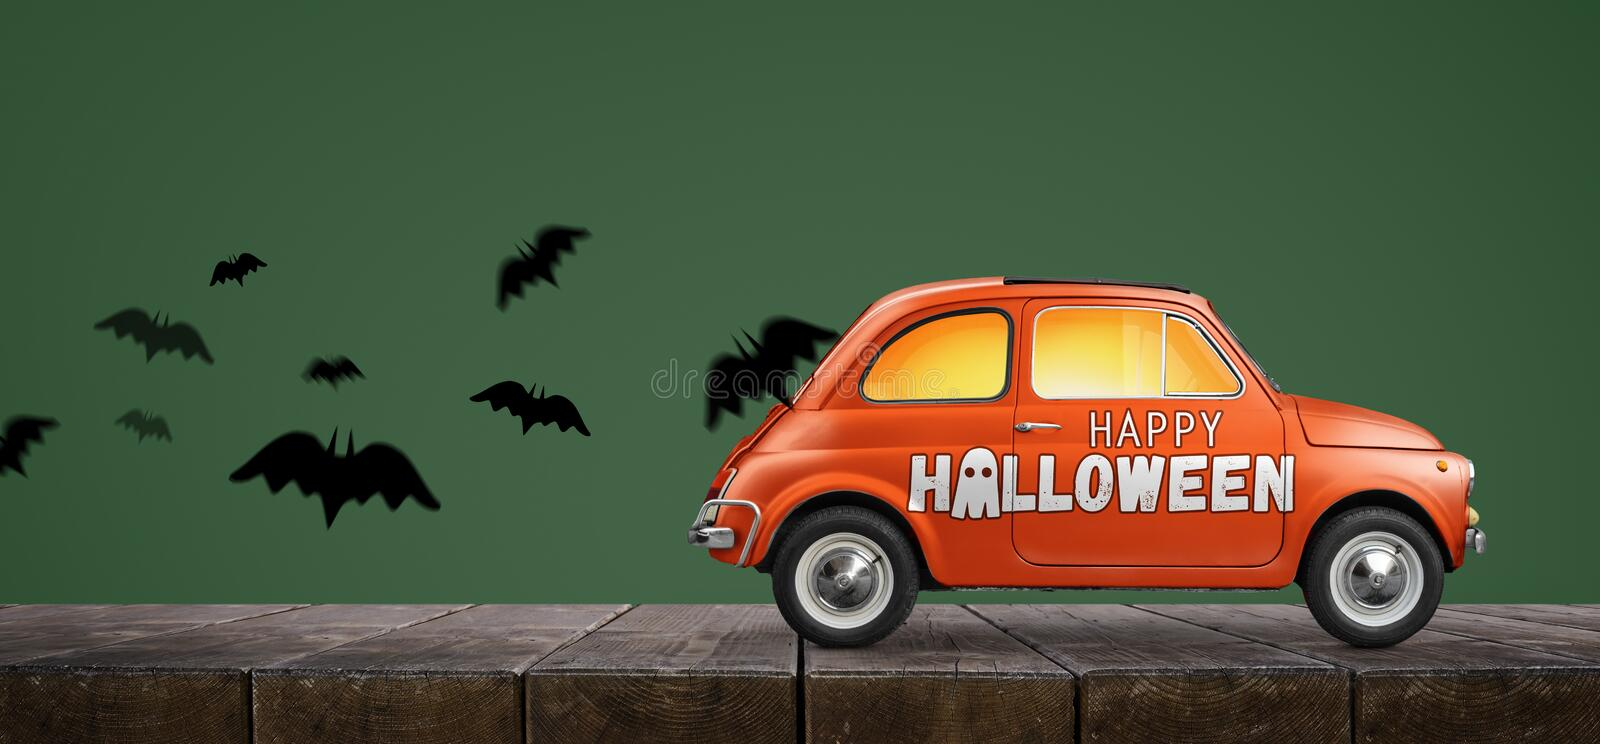 Happy Halloween car royalty free stock images